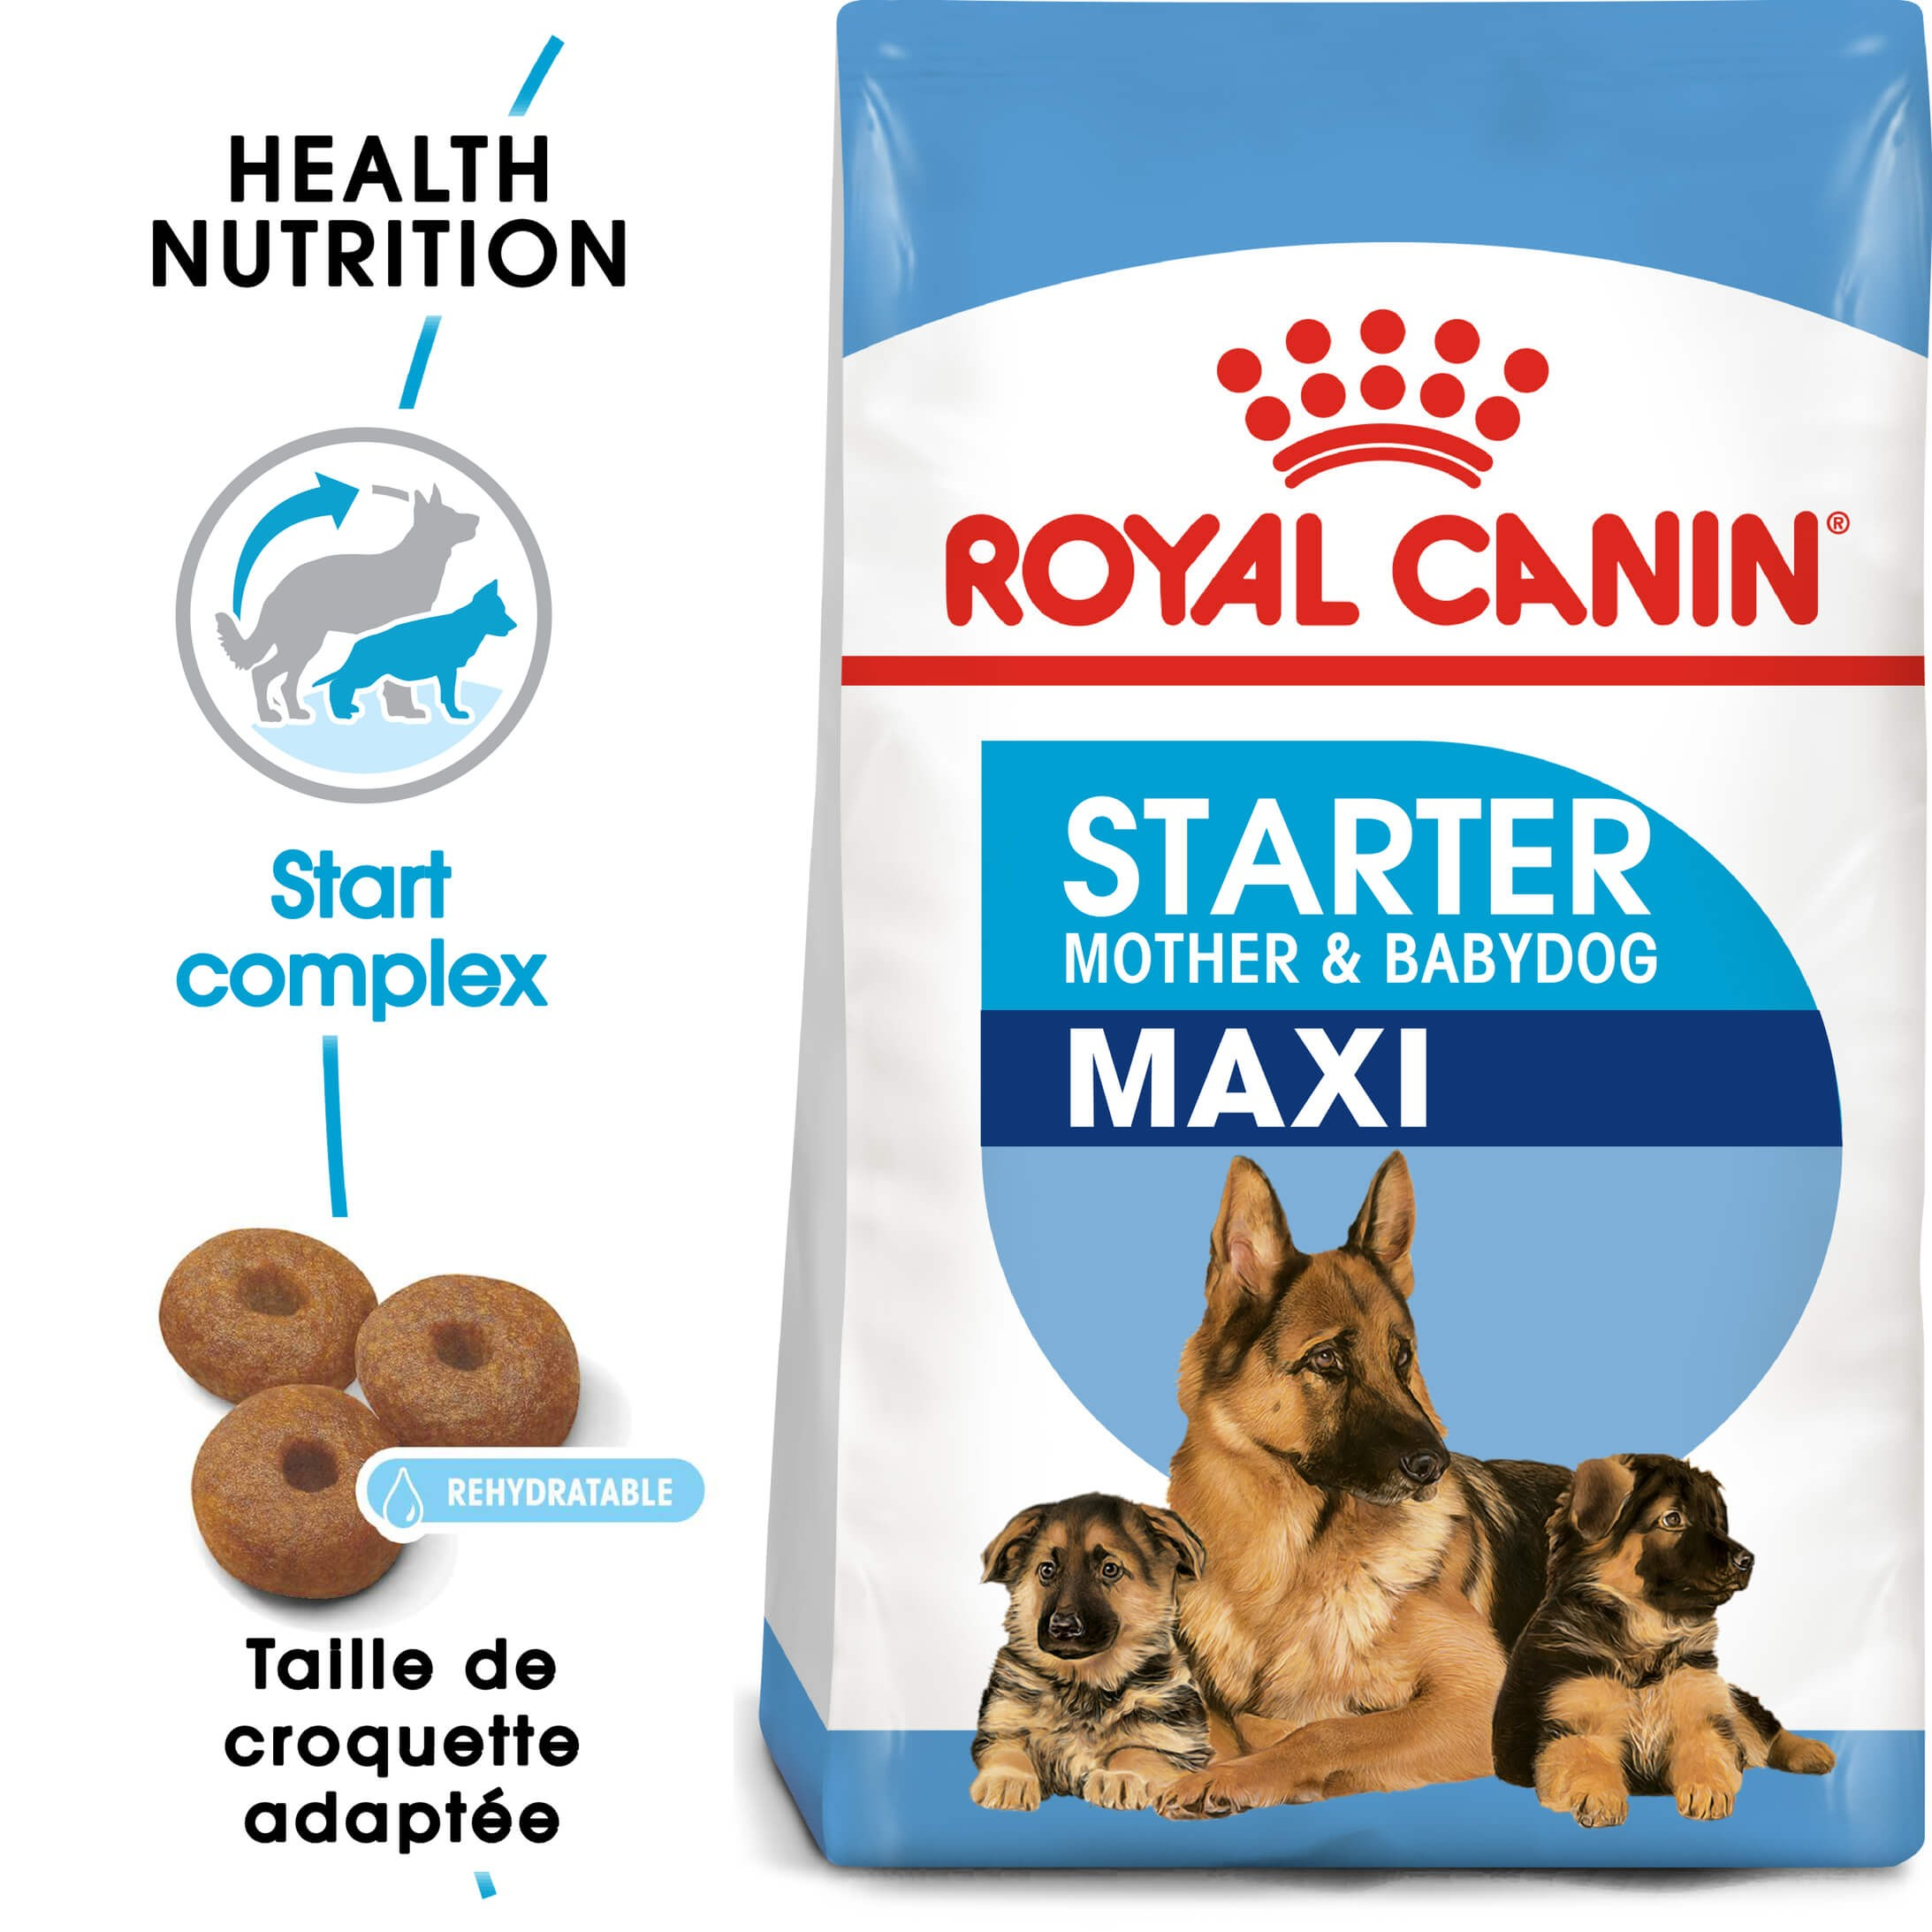 Royal Canin Maxi Starter Mother & Babydog pour chiot